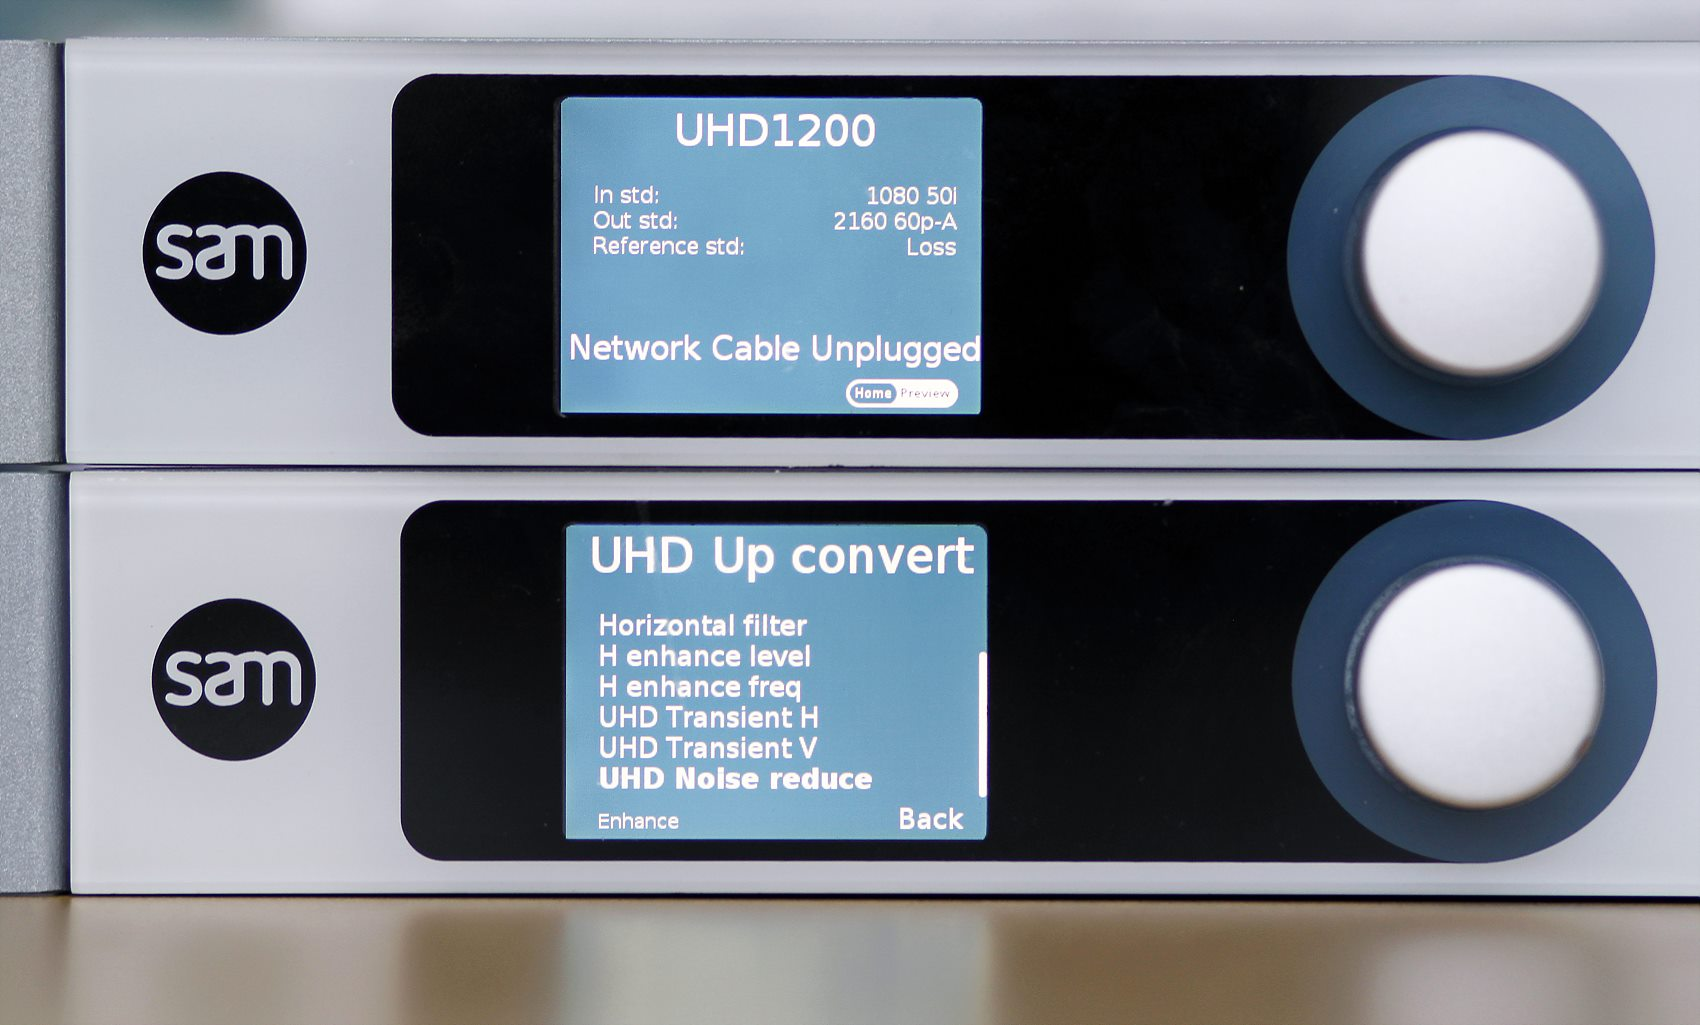 UHD1200_power_on_front